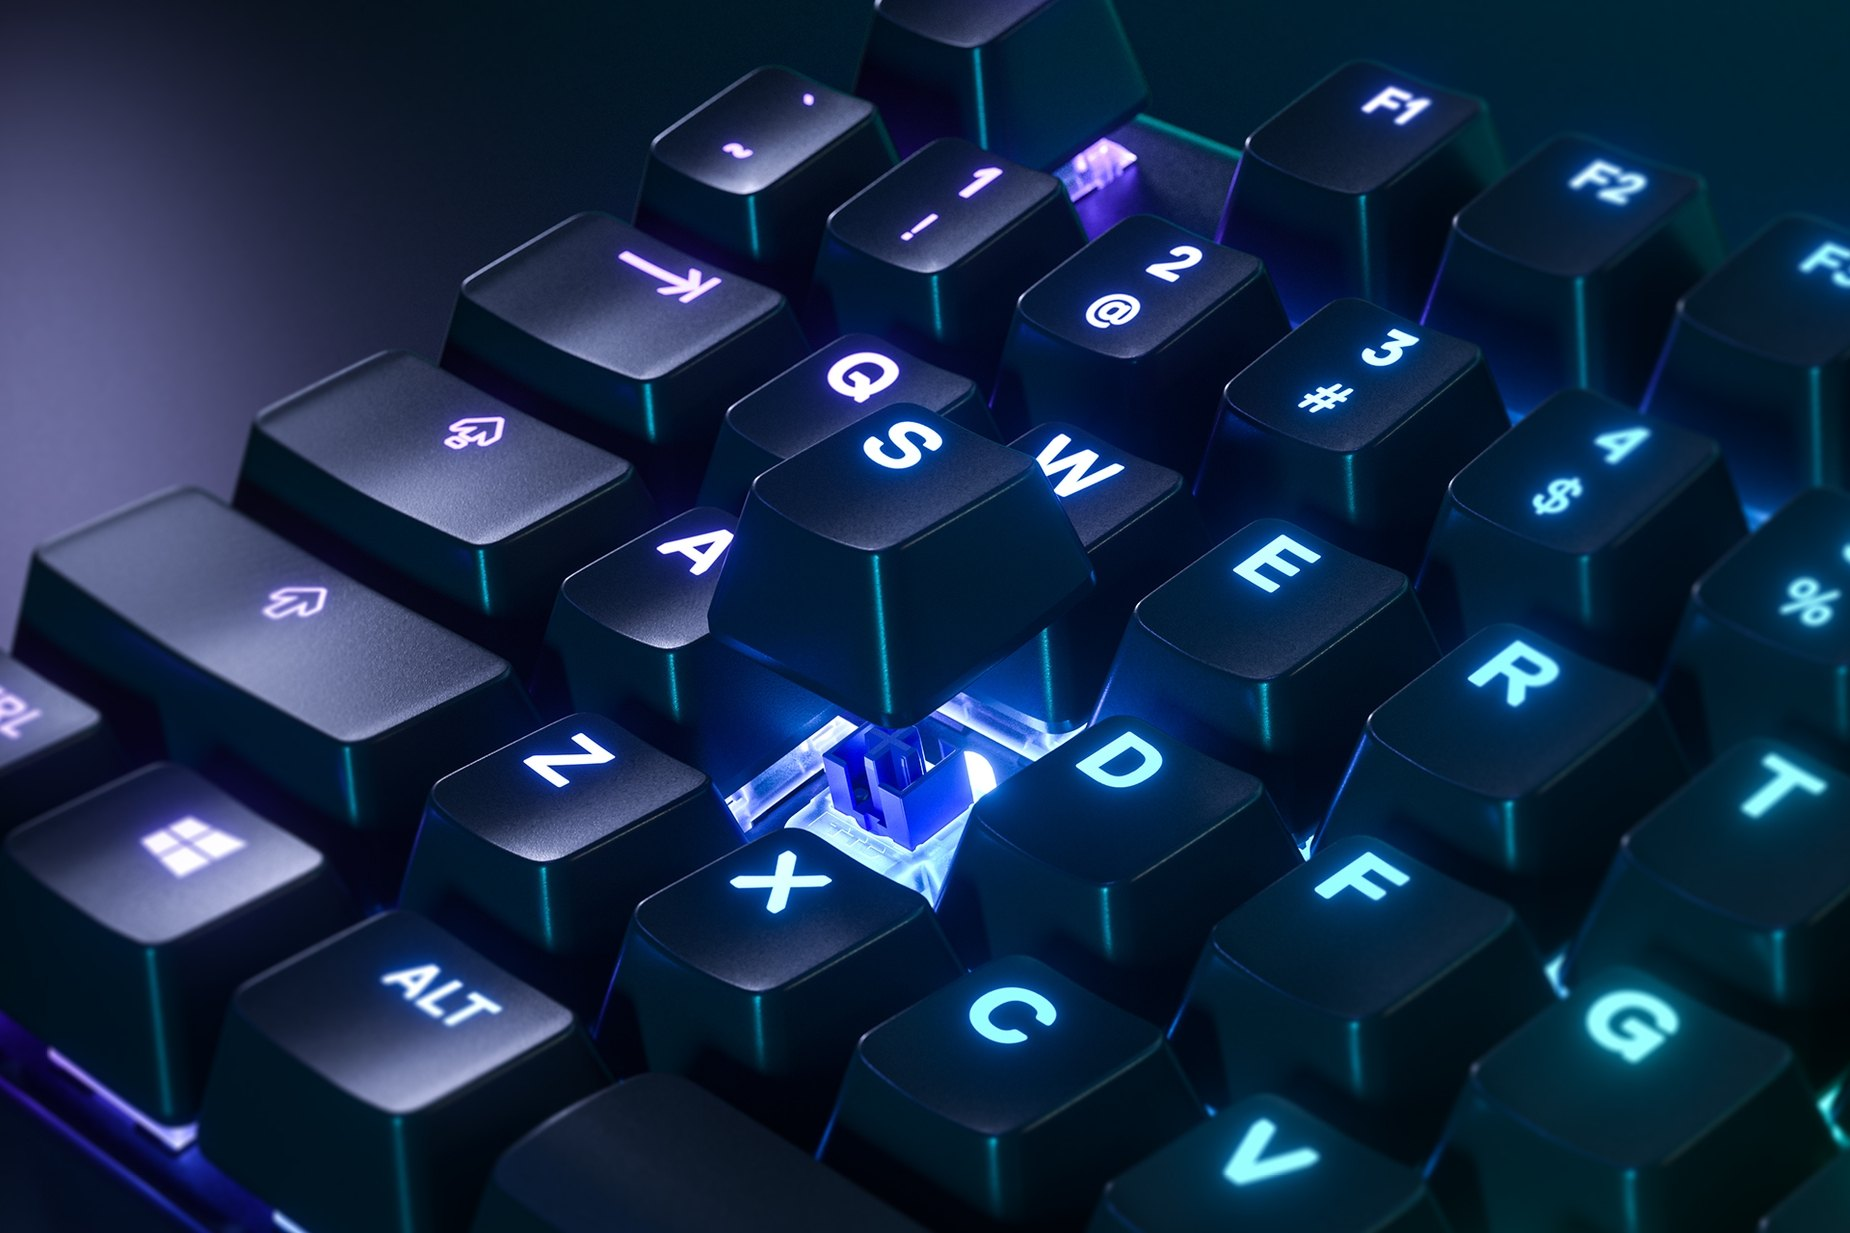 Zoomed in view of a single key on the Apex 5 gaming keyboard, the key is raised up to show the SteelSeries Hybrid Mechanical RGB Switch underneath